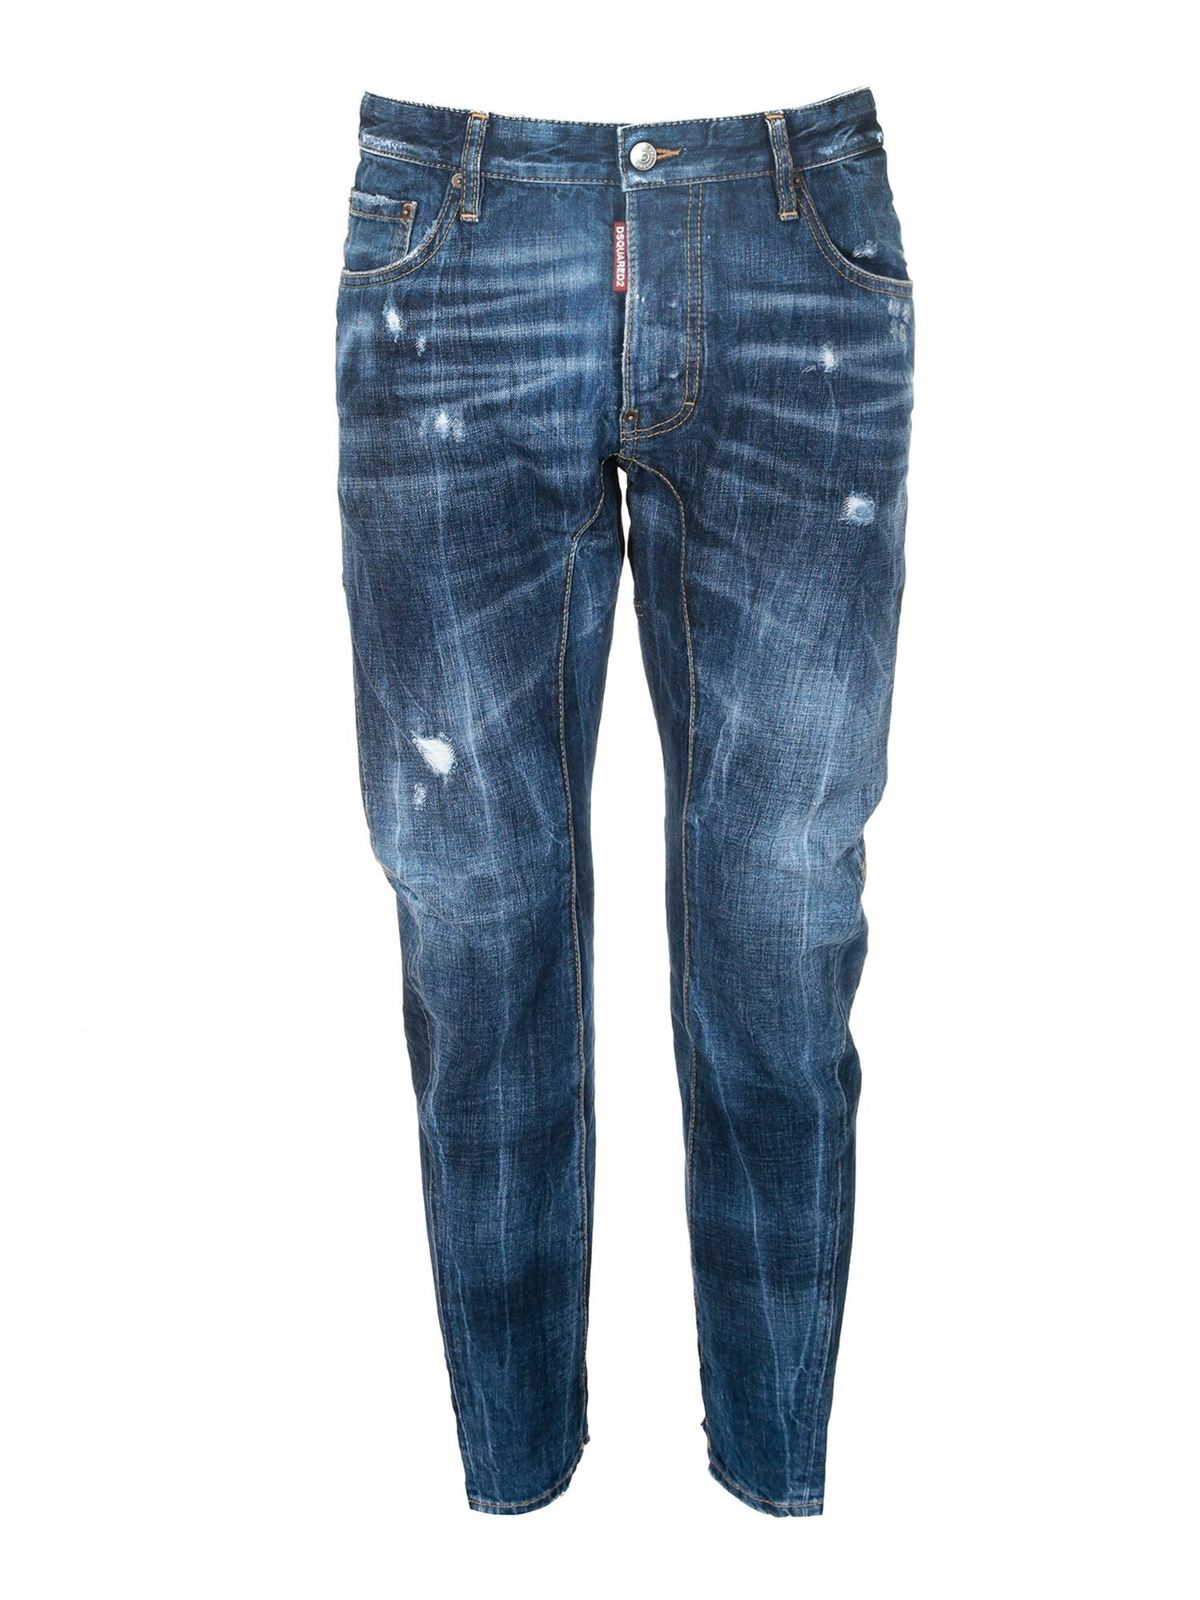 Dsquared2 TIDY BIKER JEANS IN BLUE